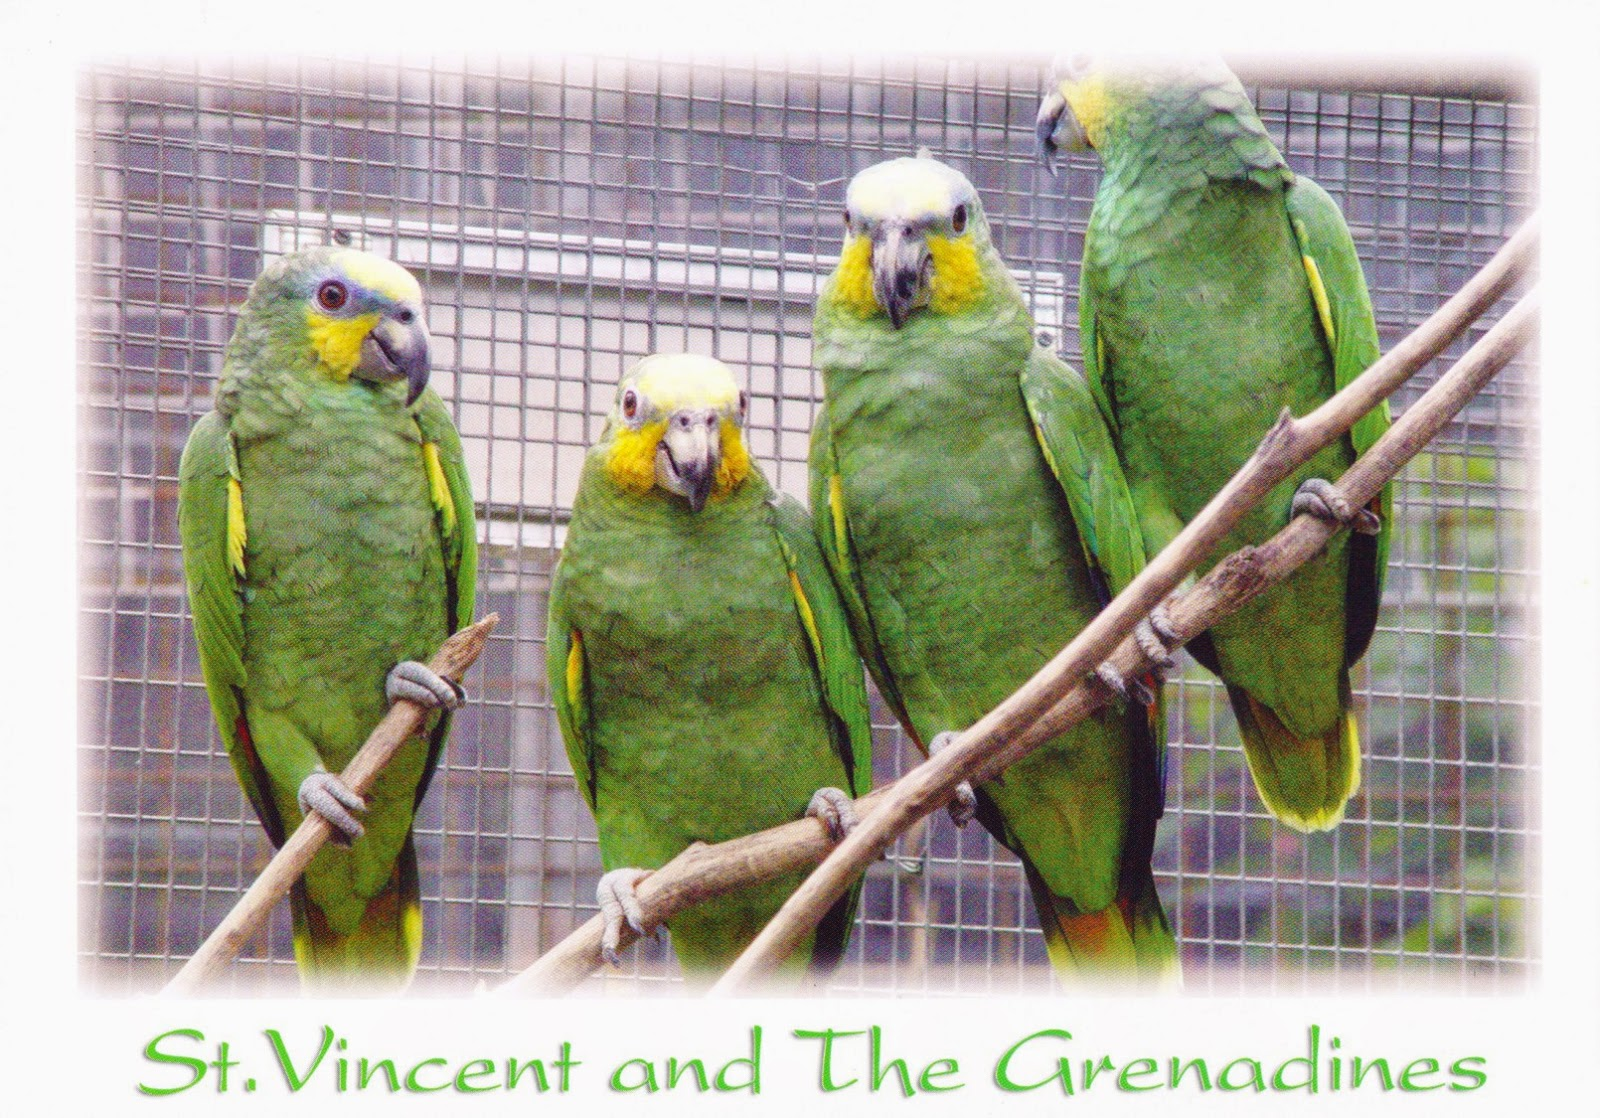 postcard, st vincent and the grenadines, amazona guildingii